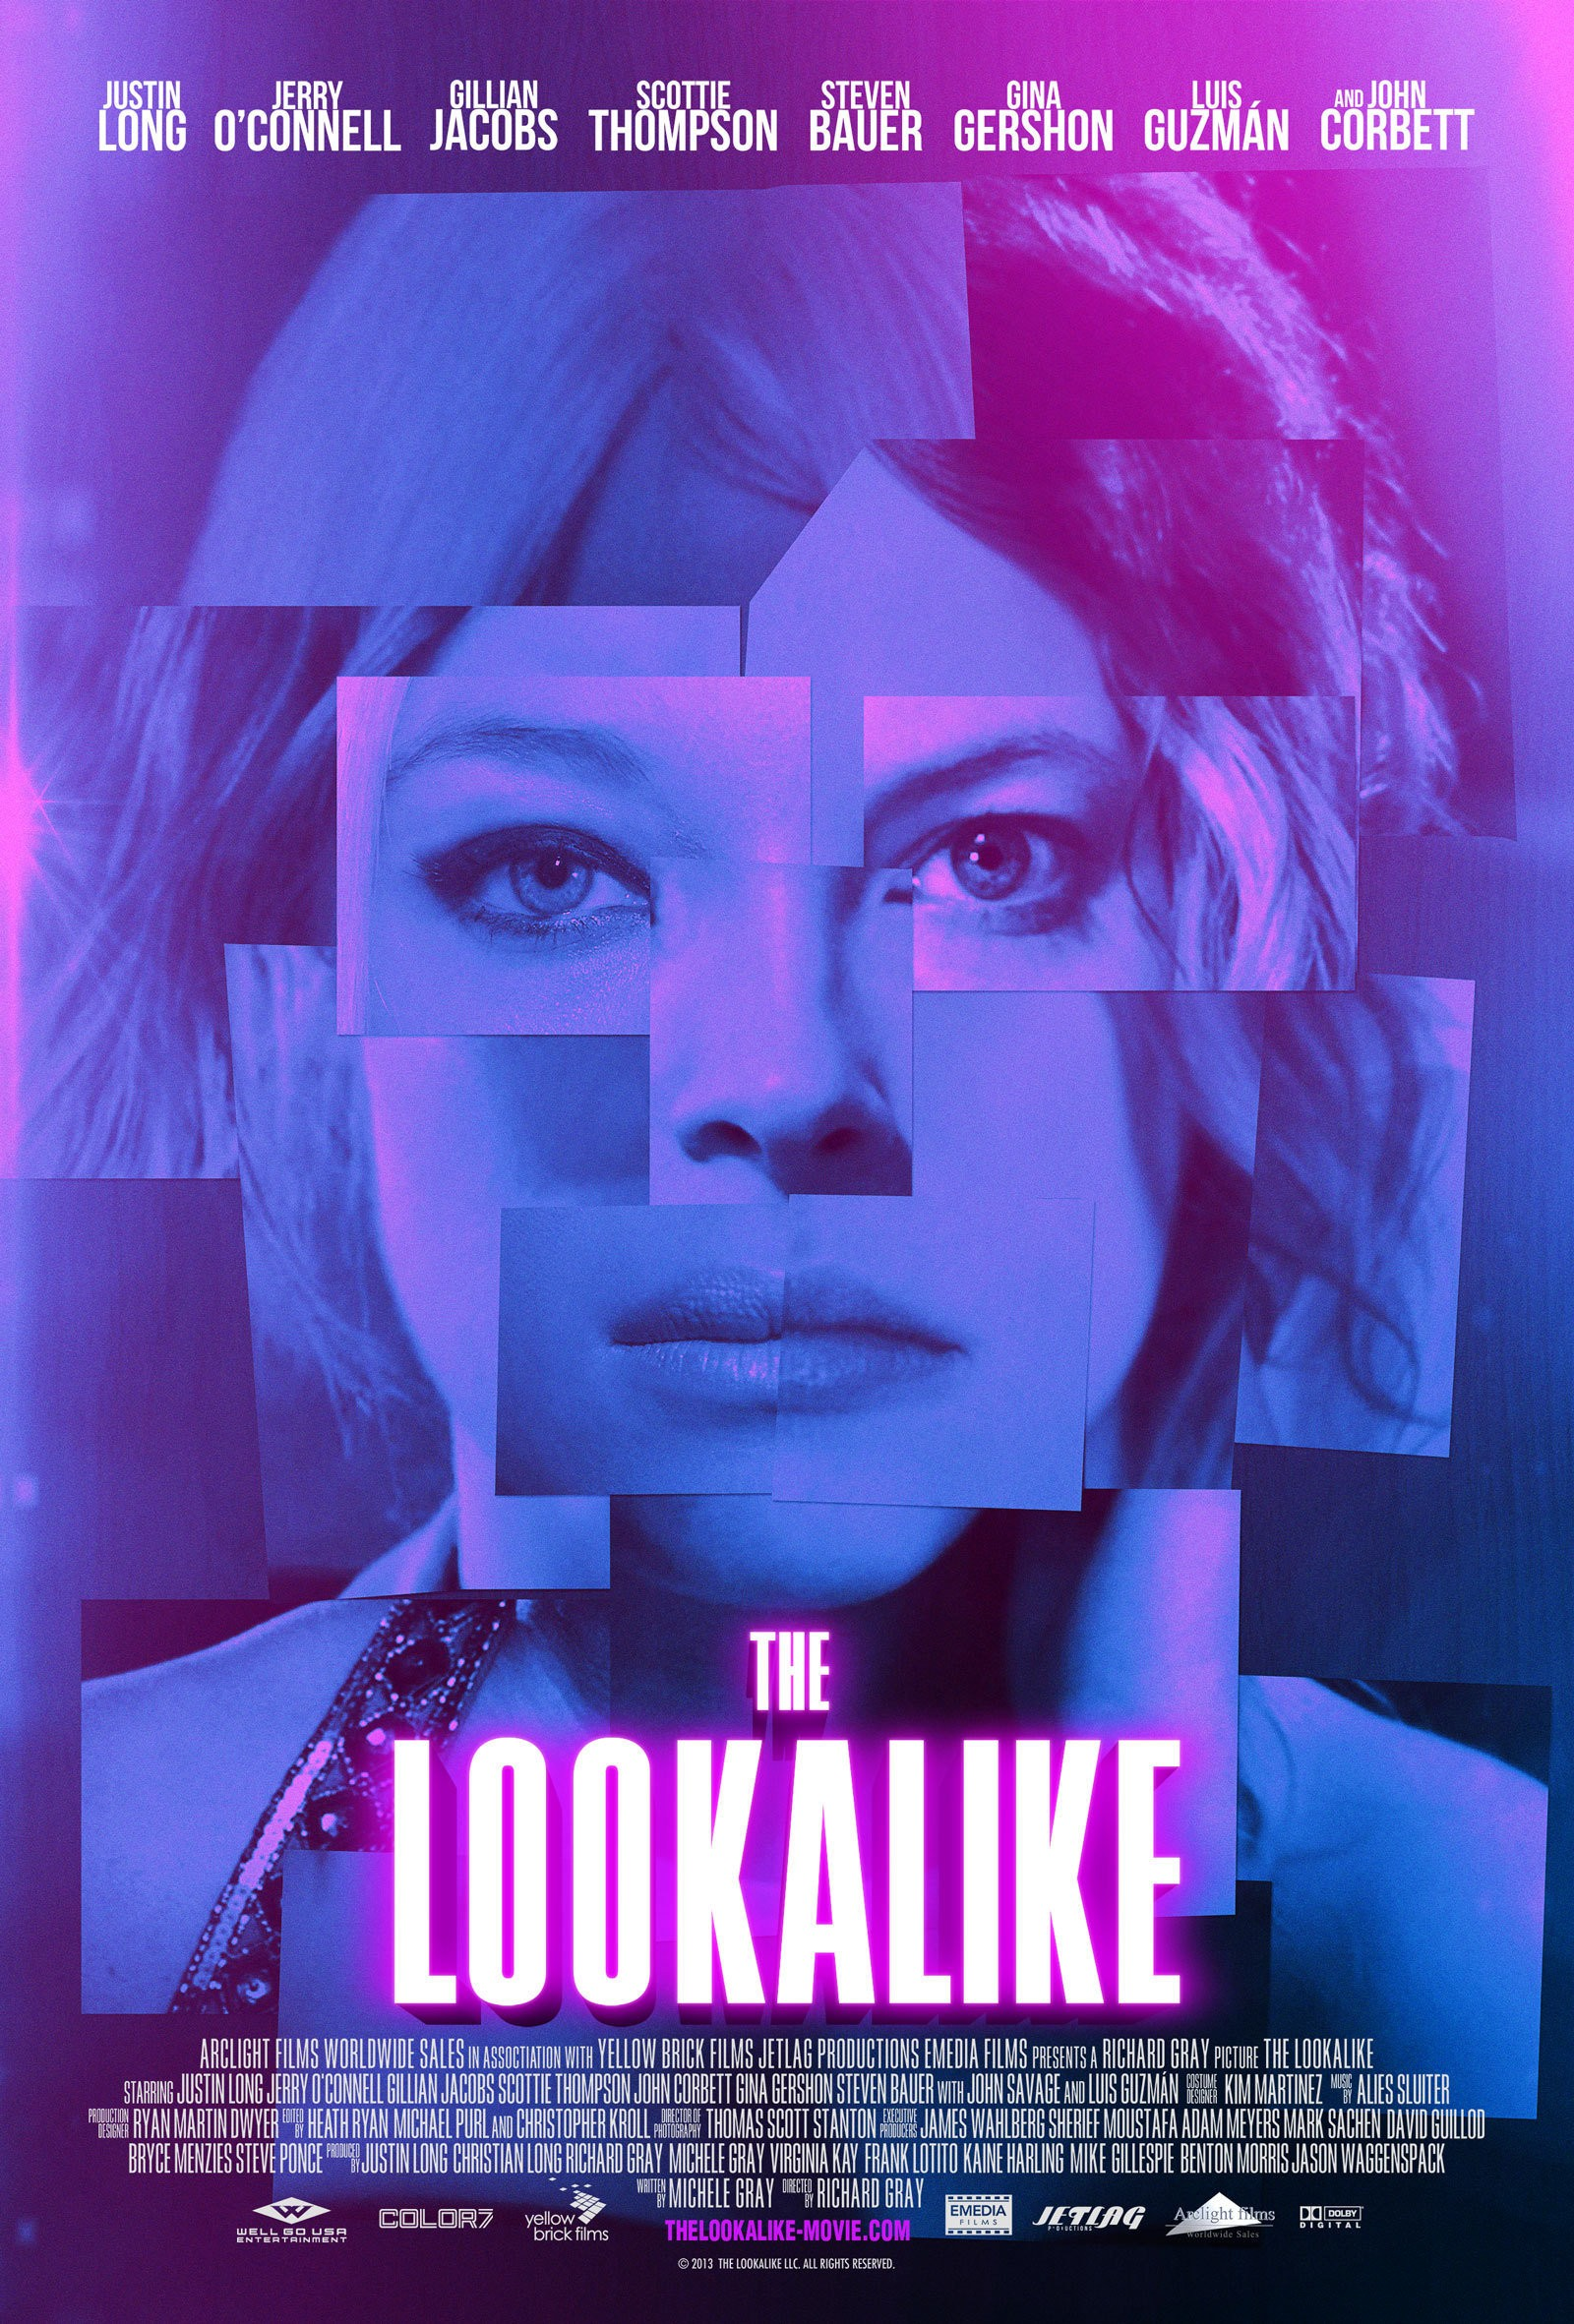 The Lookalike-Official Poster XXLG-15OUTUBRO2014-01